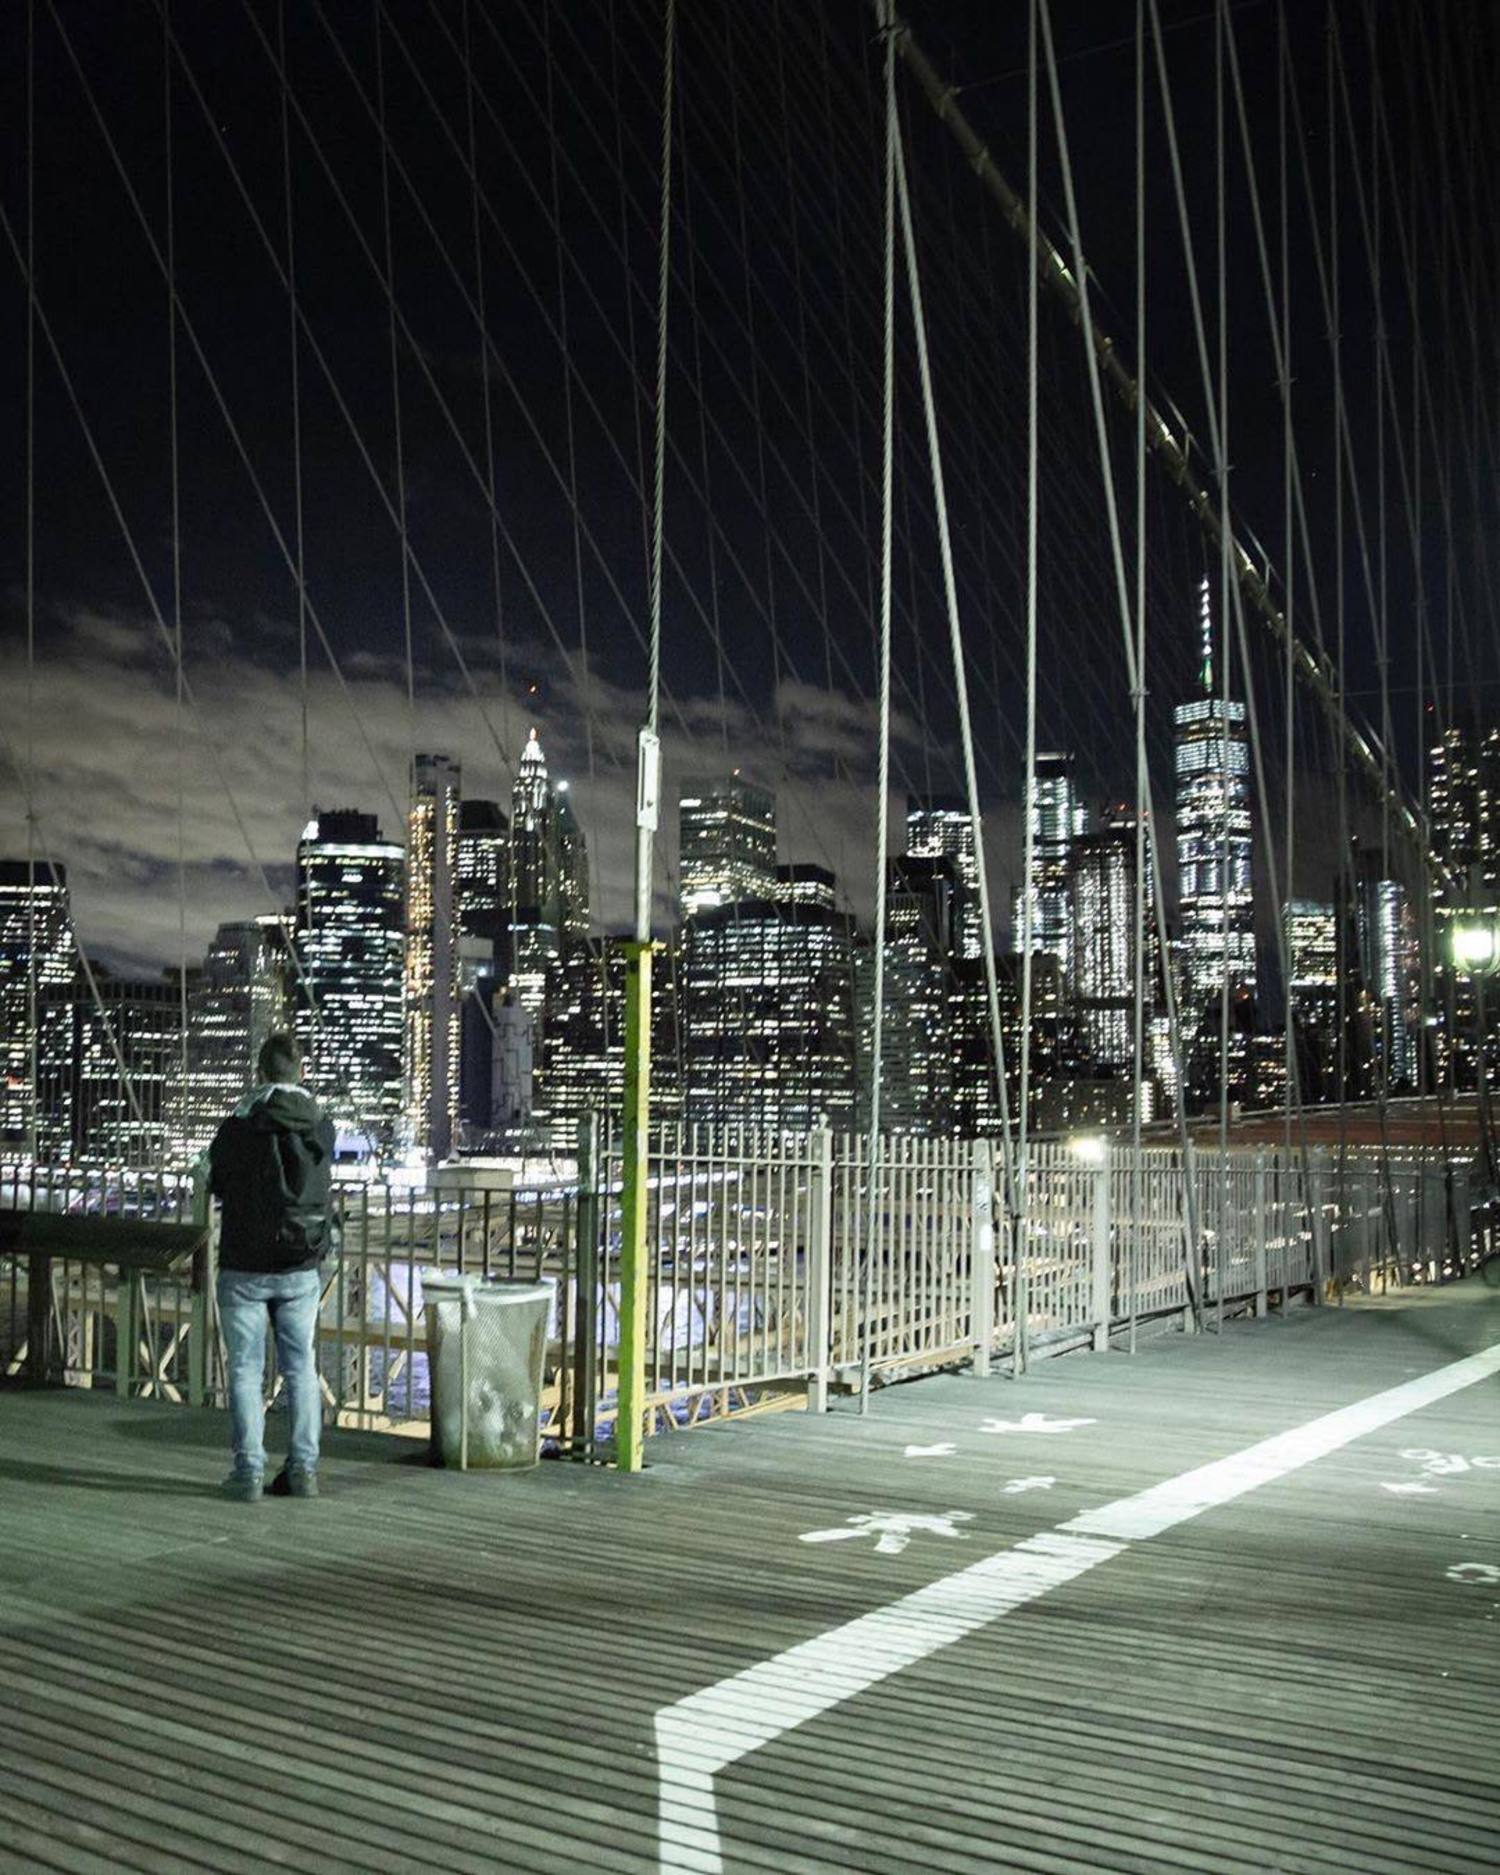 Brooklyn Bridge, New York, New York. Photo via @brianjbonanno #viewingnyc #nyc #newyork #newyorkcity #brooklynbridge